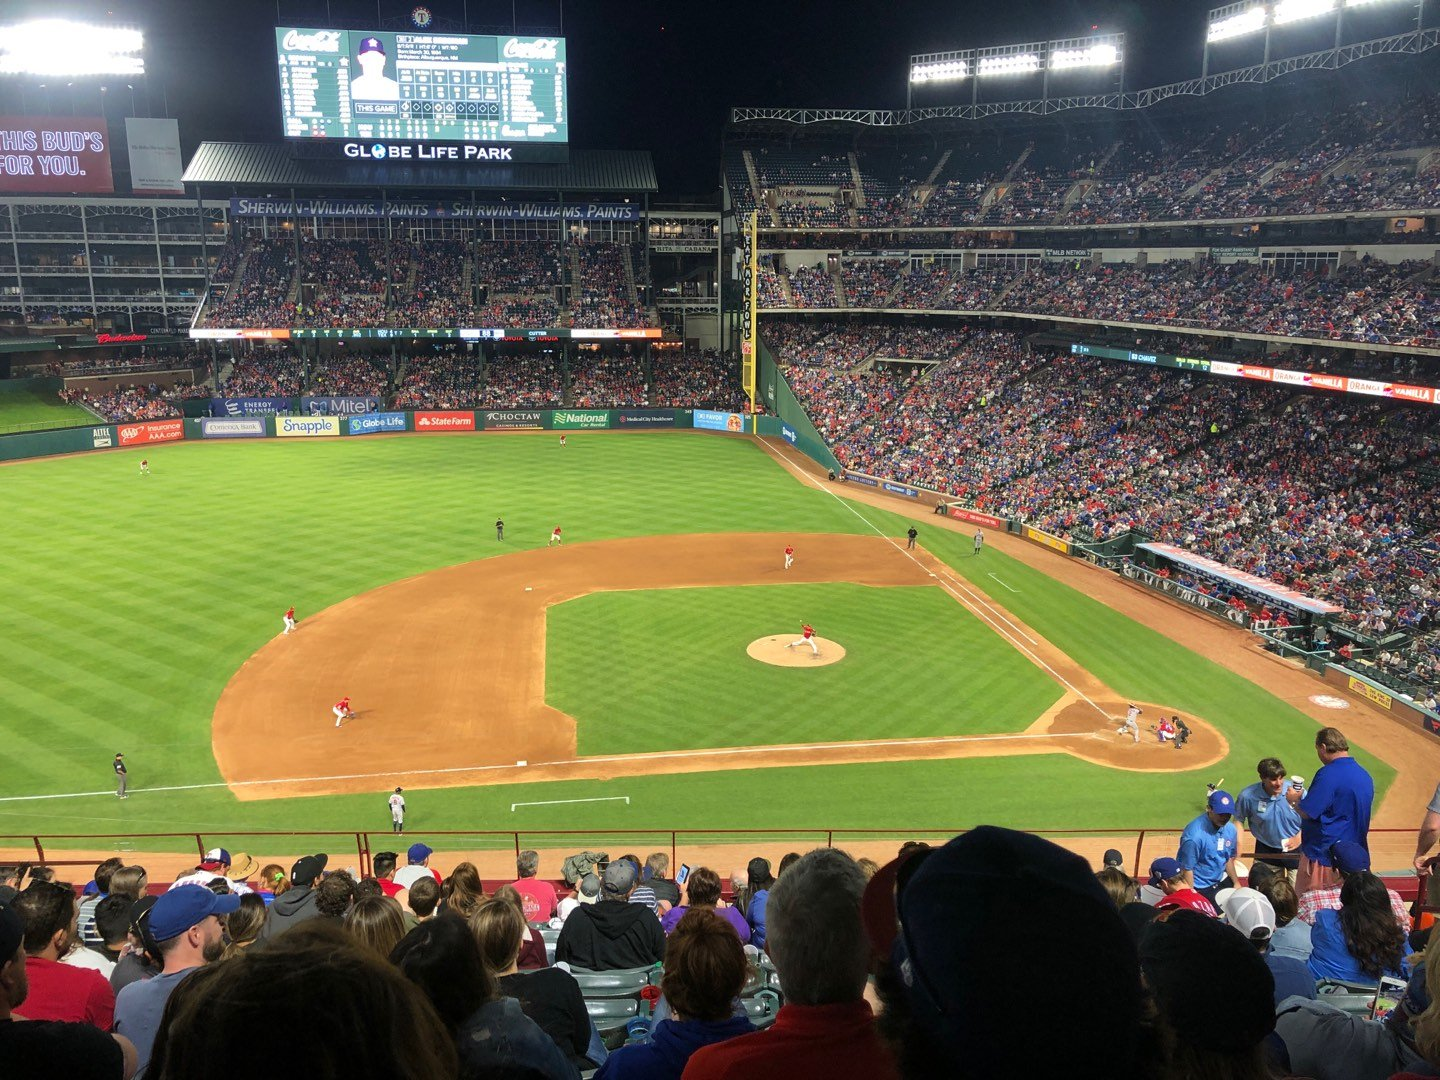 Globe Life Park in Arlington Section 219 Row 12 Seat 8